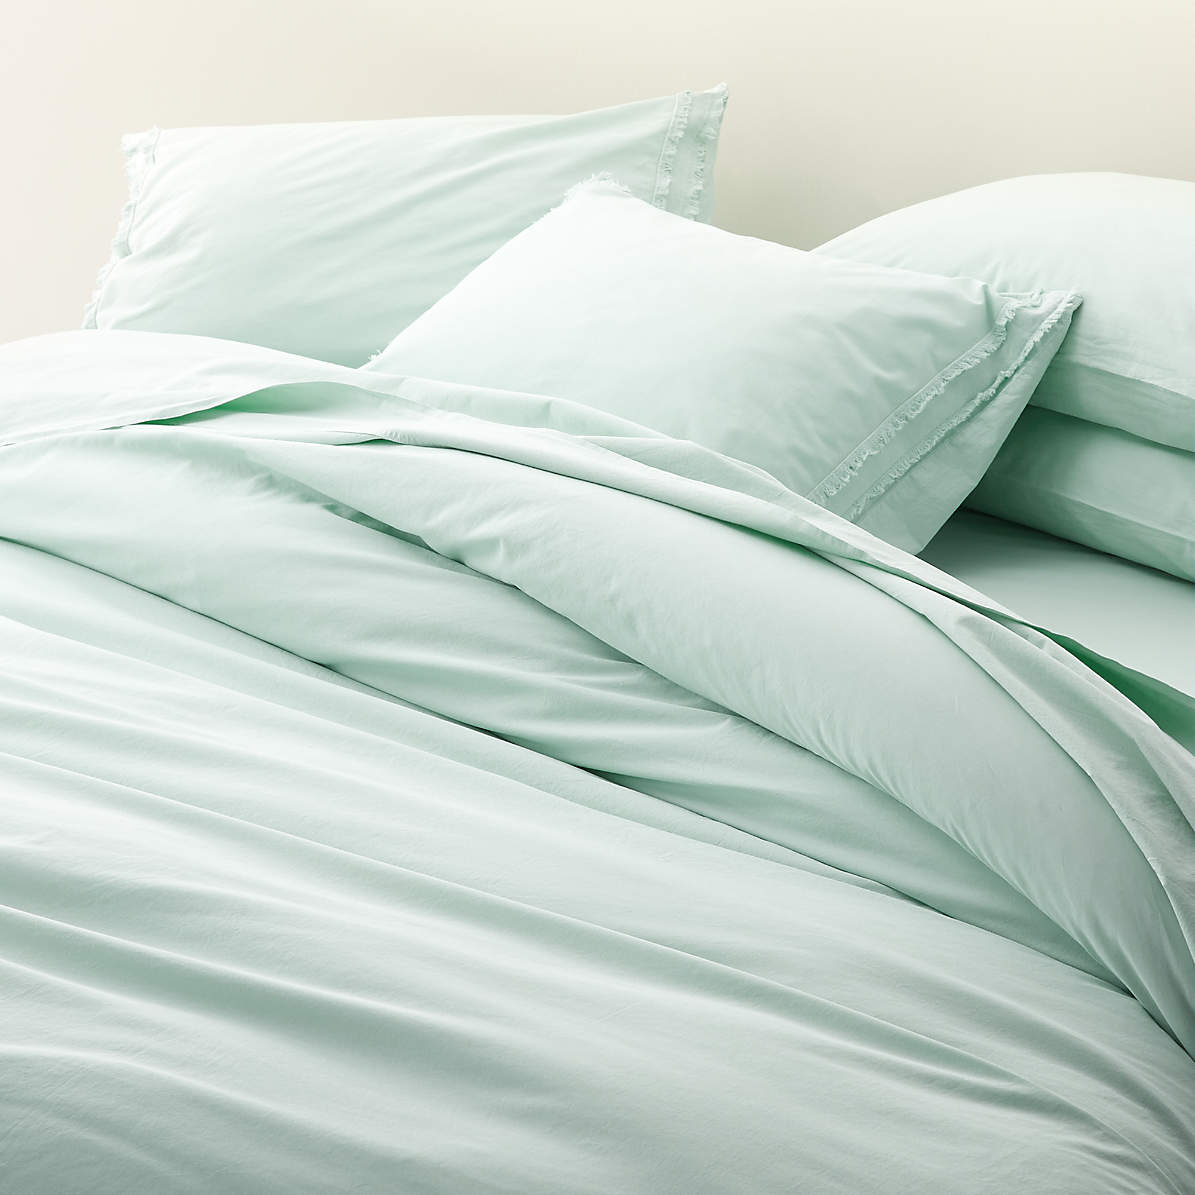 Washed Organic Cotton Light Blue Duvet Covers And Pillow Shams Crate And Barrel Canada